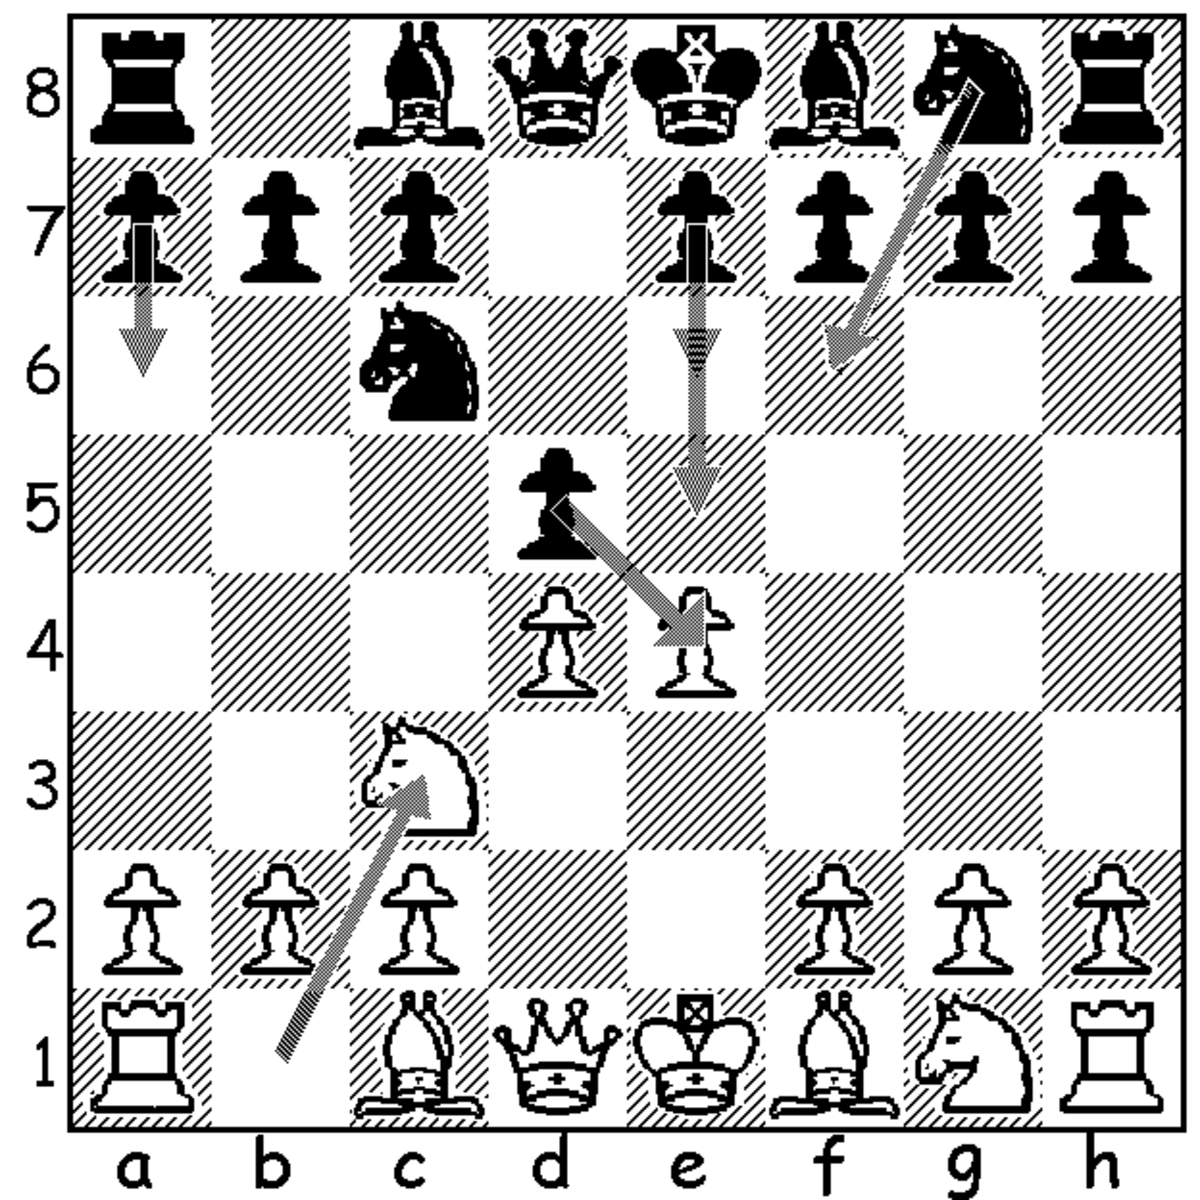 This diagram shows black's five third move options following 3.Nc3. In order of popularity, they are, 3...dxe4, 3...Nf6, 3...e6, 3...e5, and 3...a6.